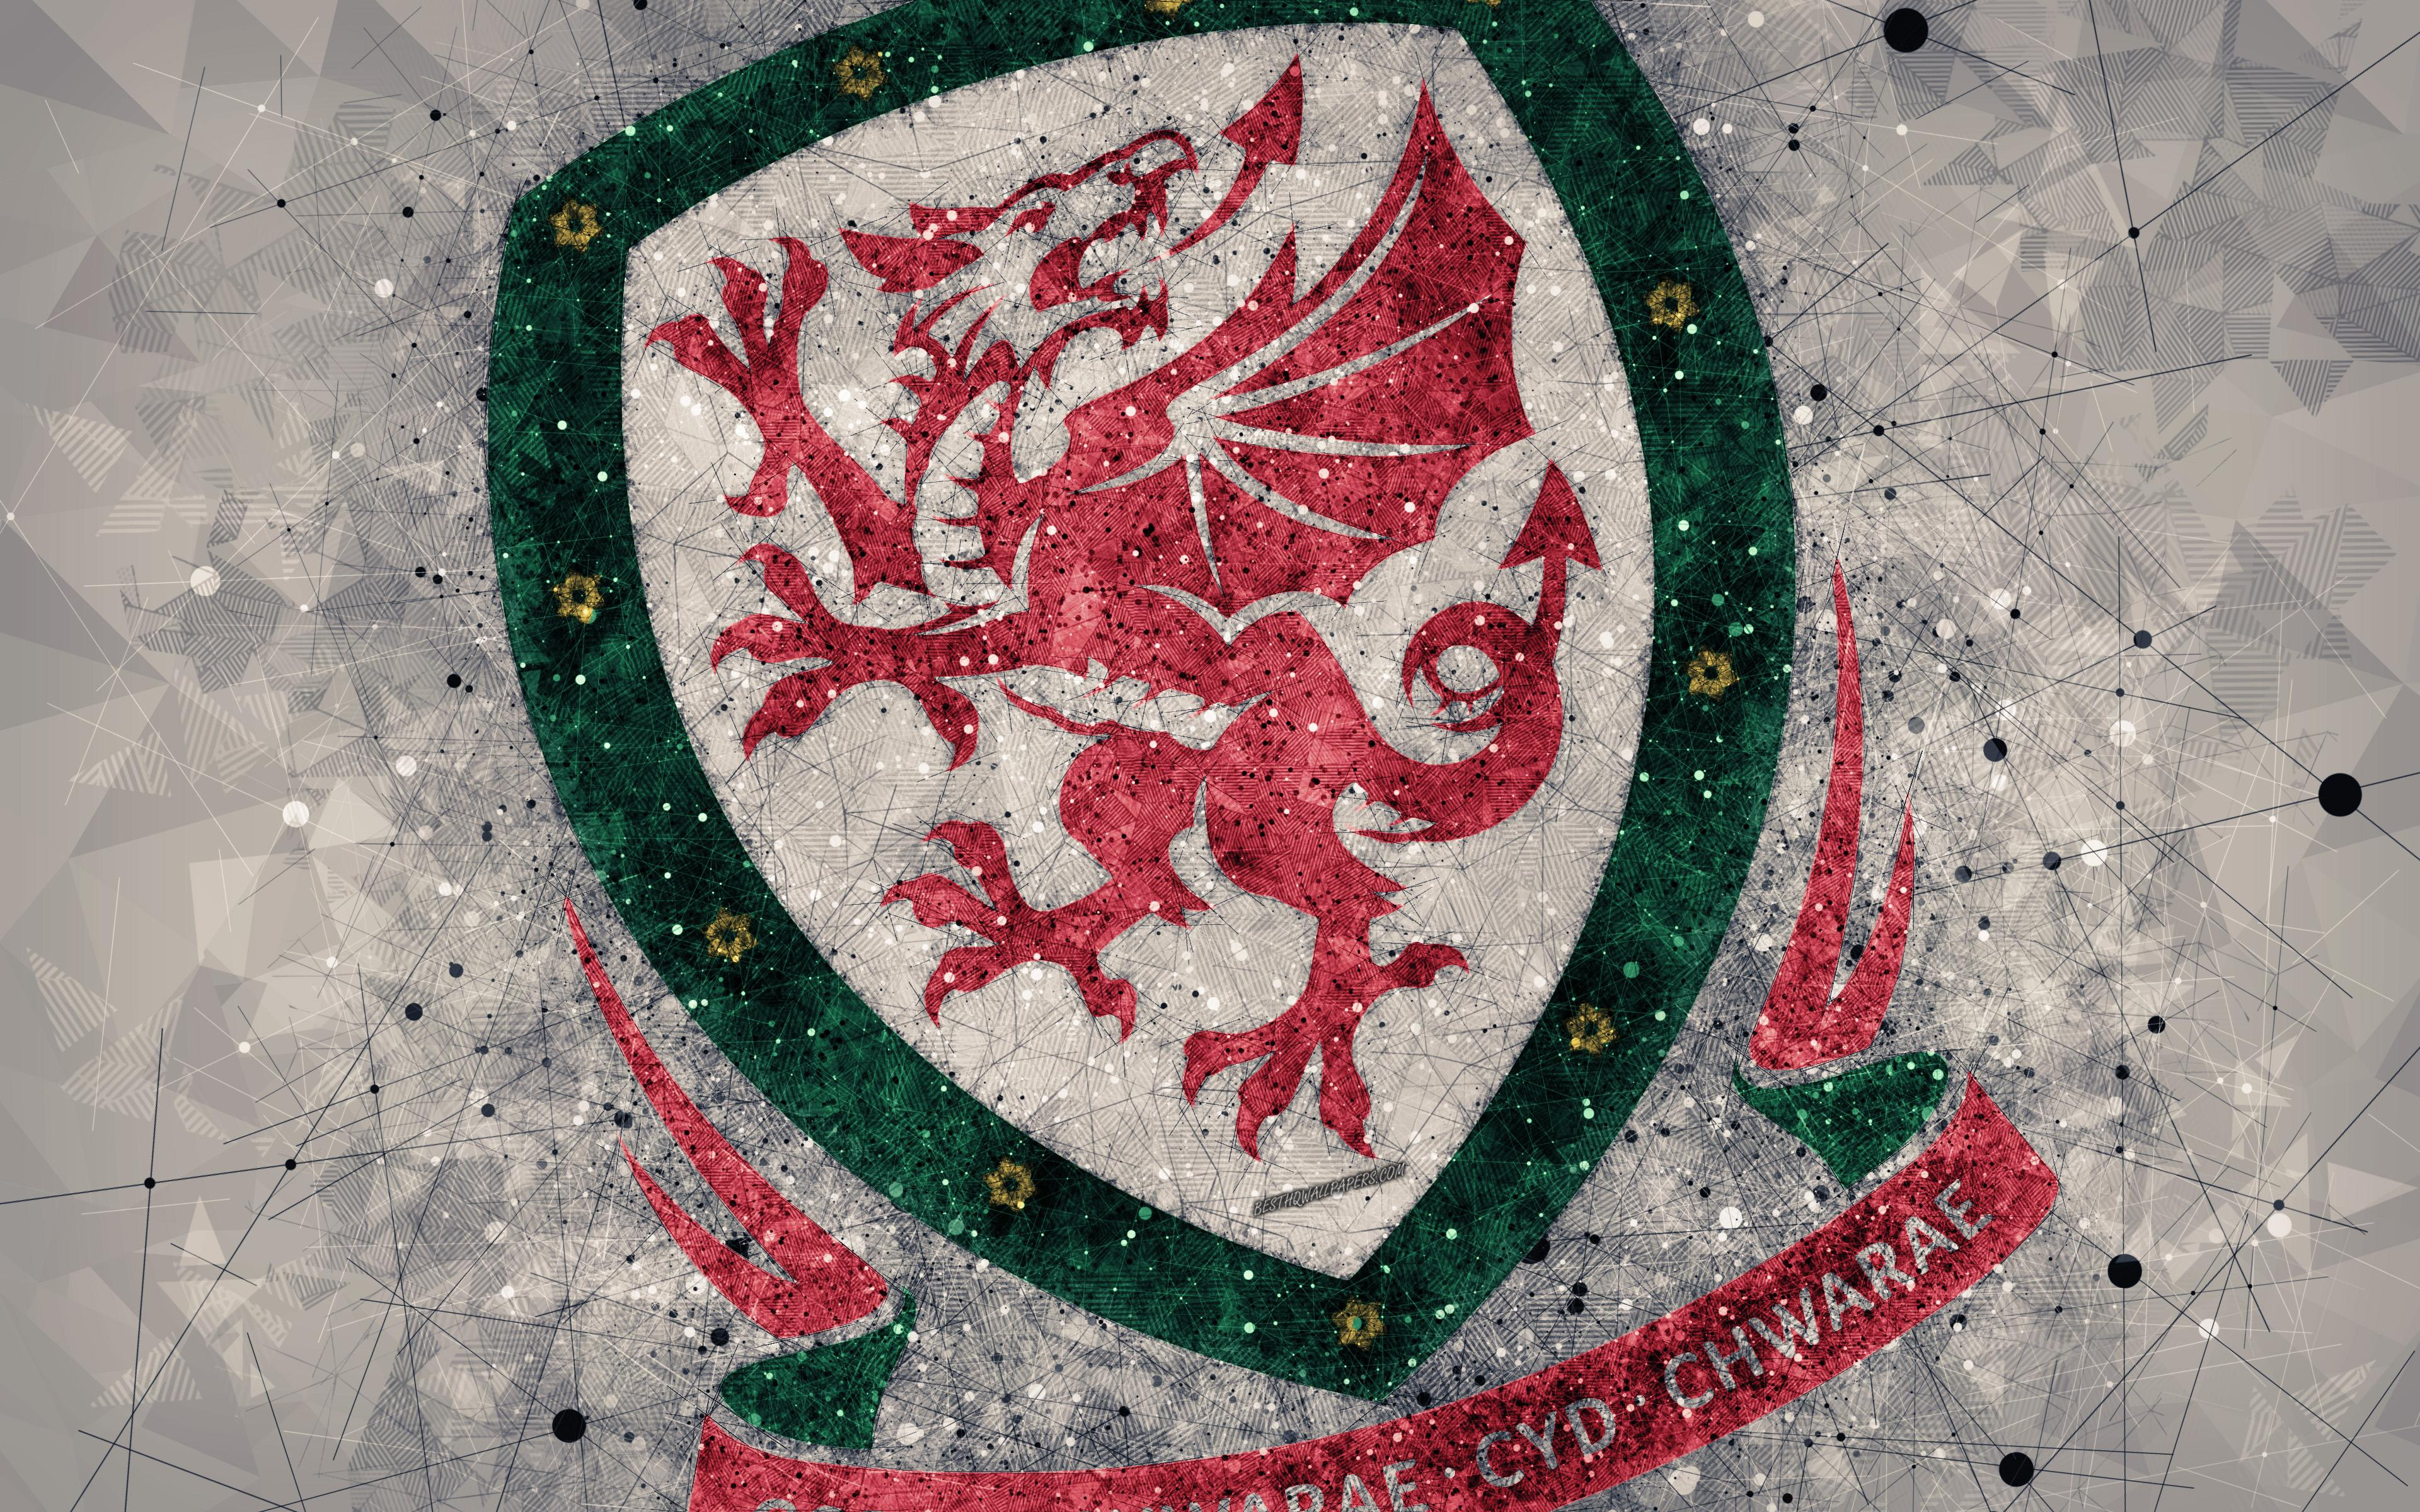 Download wallpapers Wales national football team, 4k, geometric art